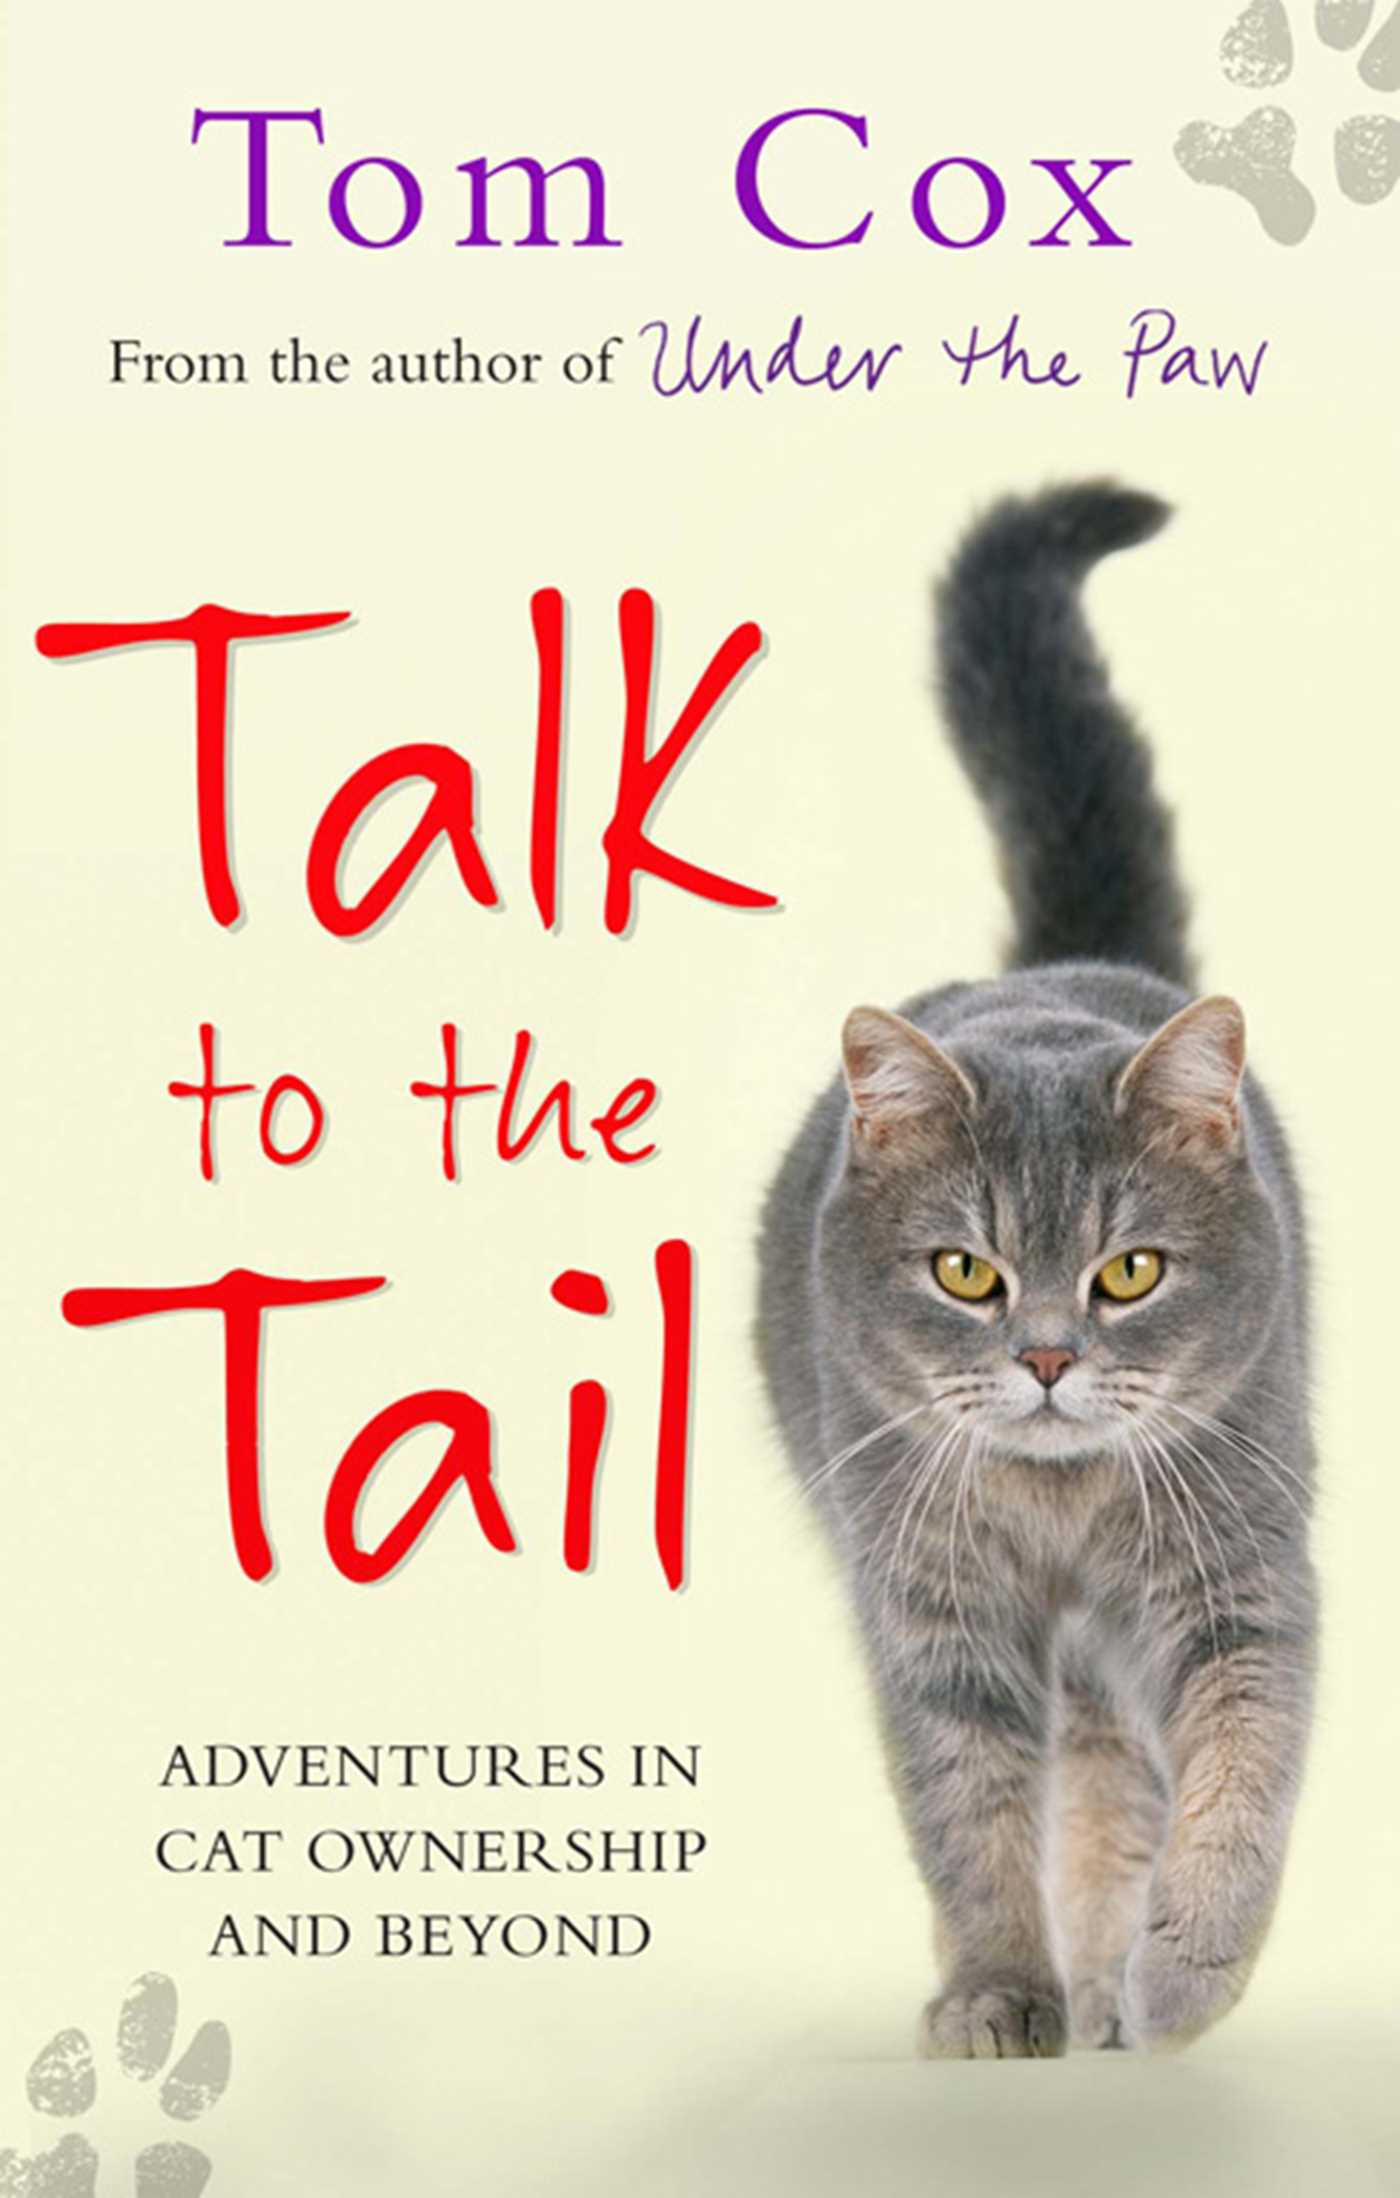 Talk-to-the-tail-9781847378194_hr